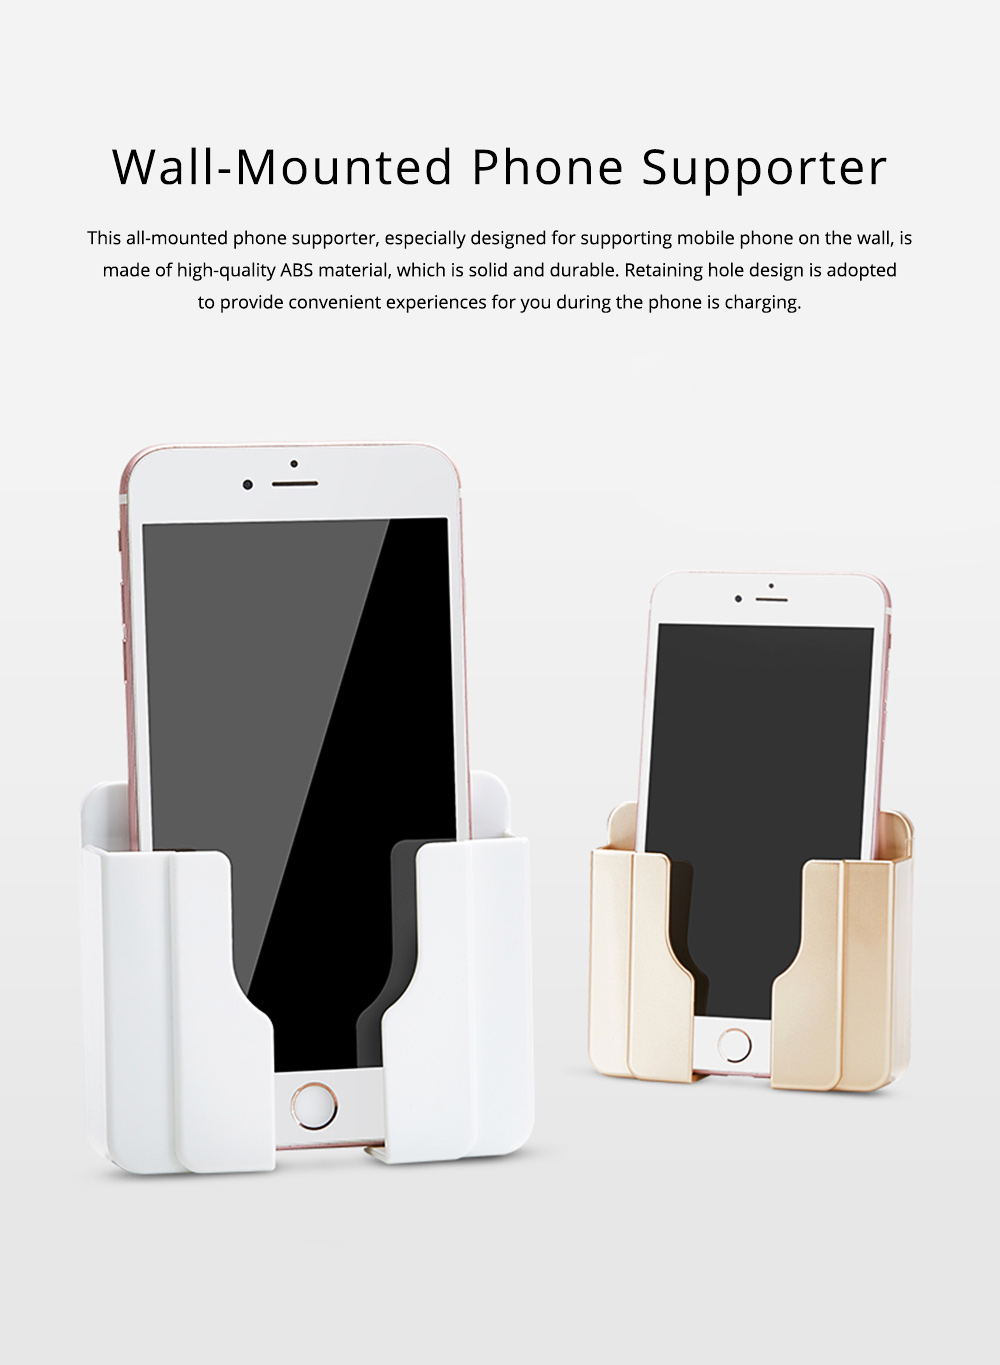 Wall-mounted Universal Smart Phone Free Stiletto Holder, Minimalist Solid ABS Mobile Phone Supporter 0